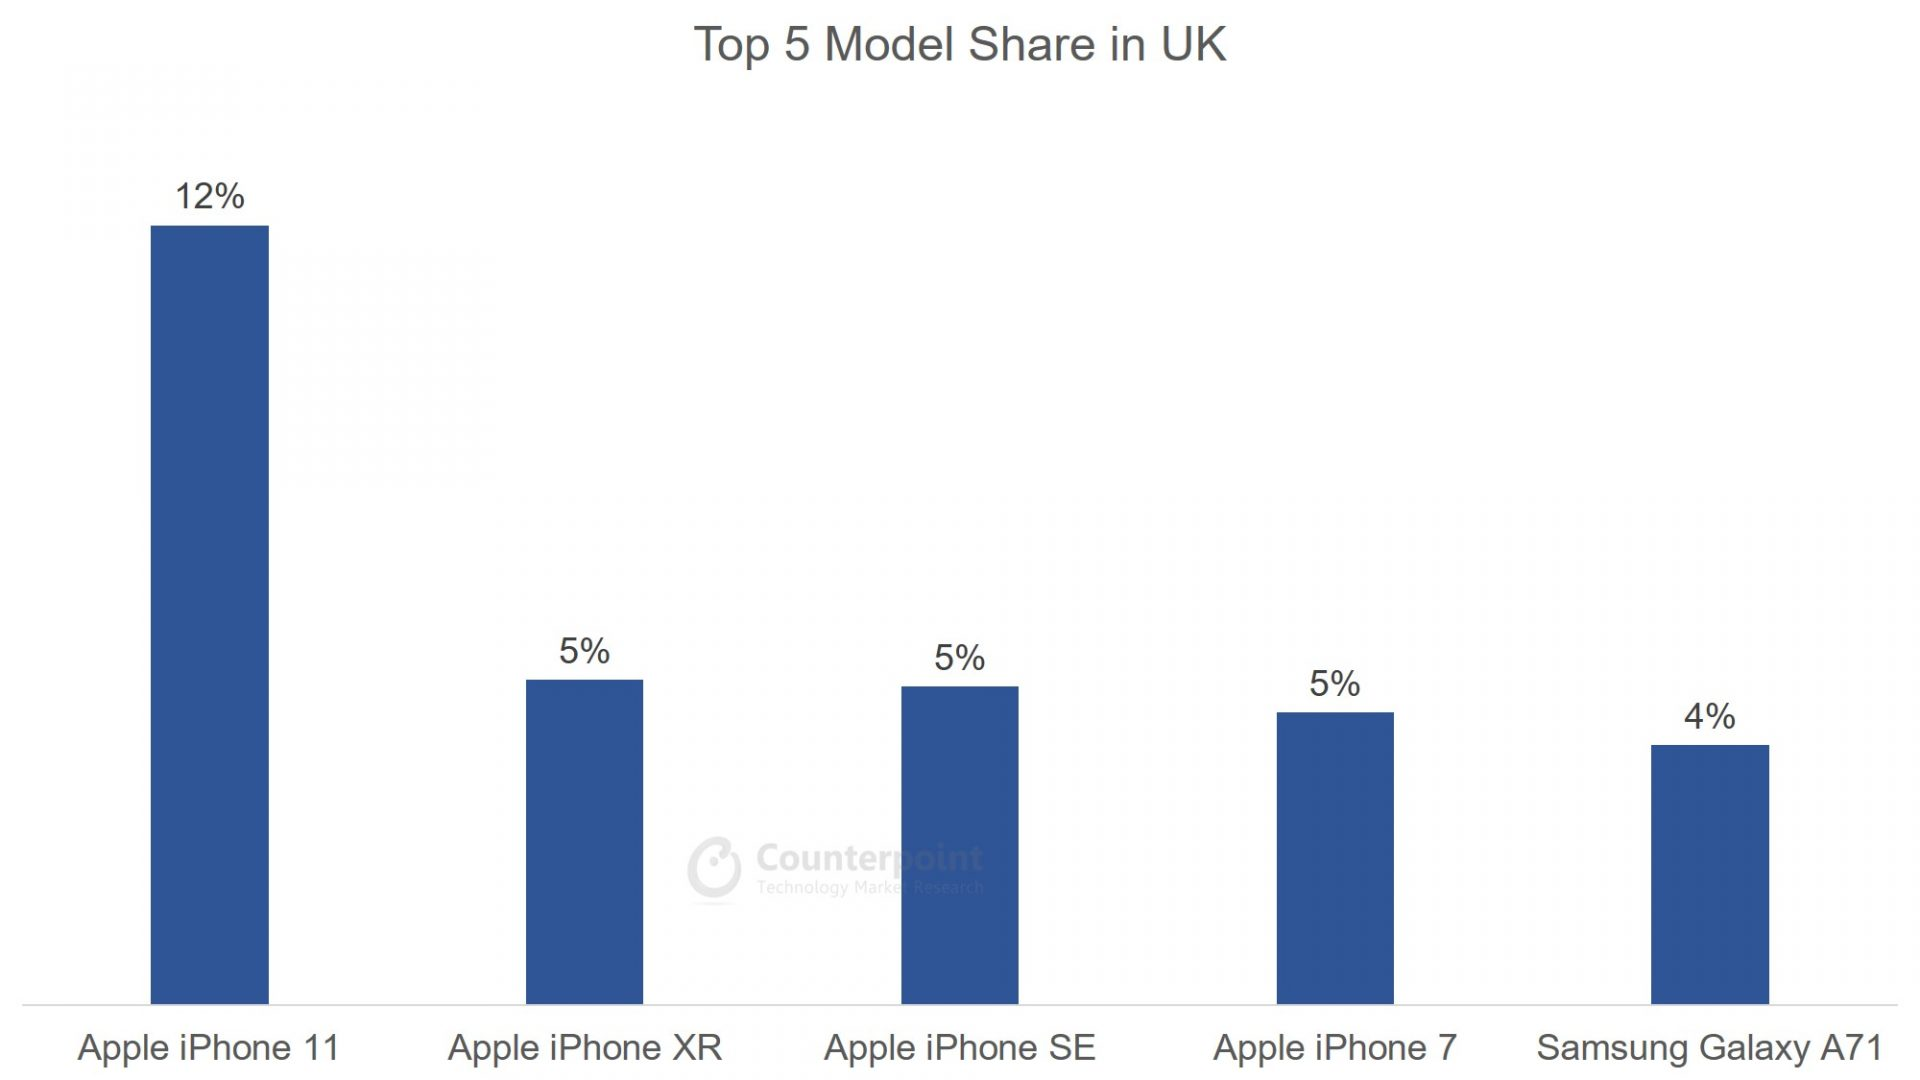 Counterpoint Top 5 Smartphone Model Share in UK